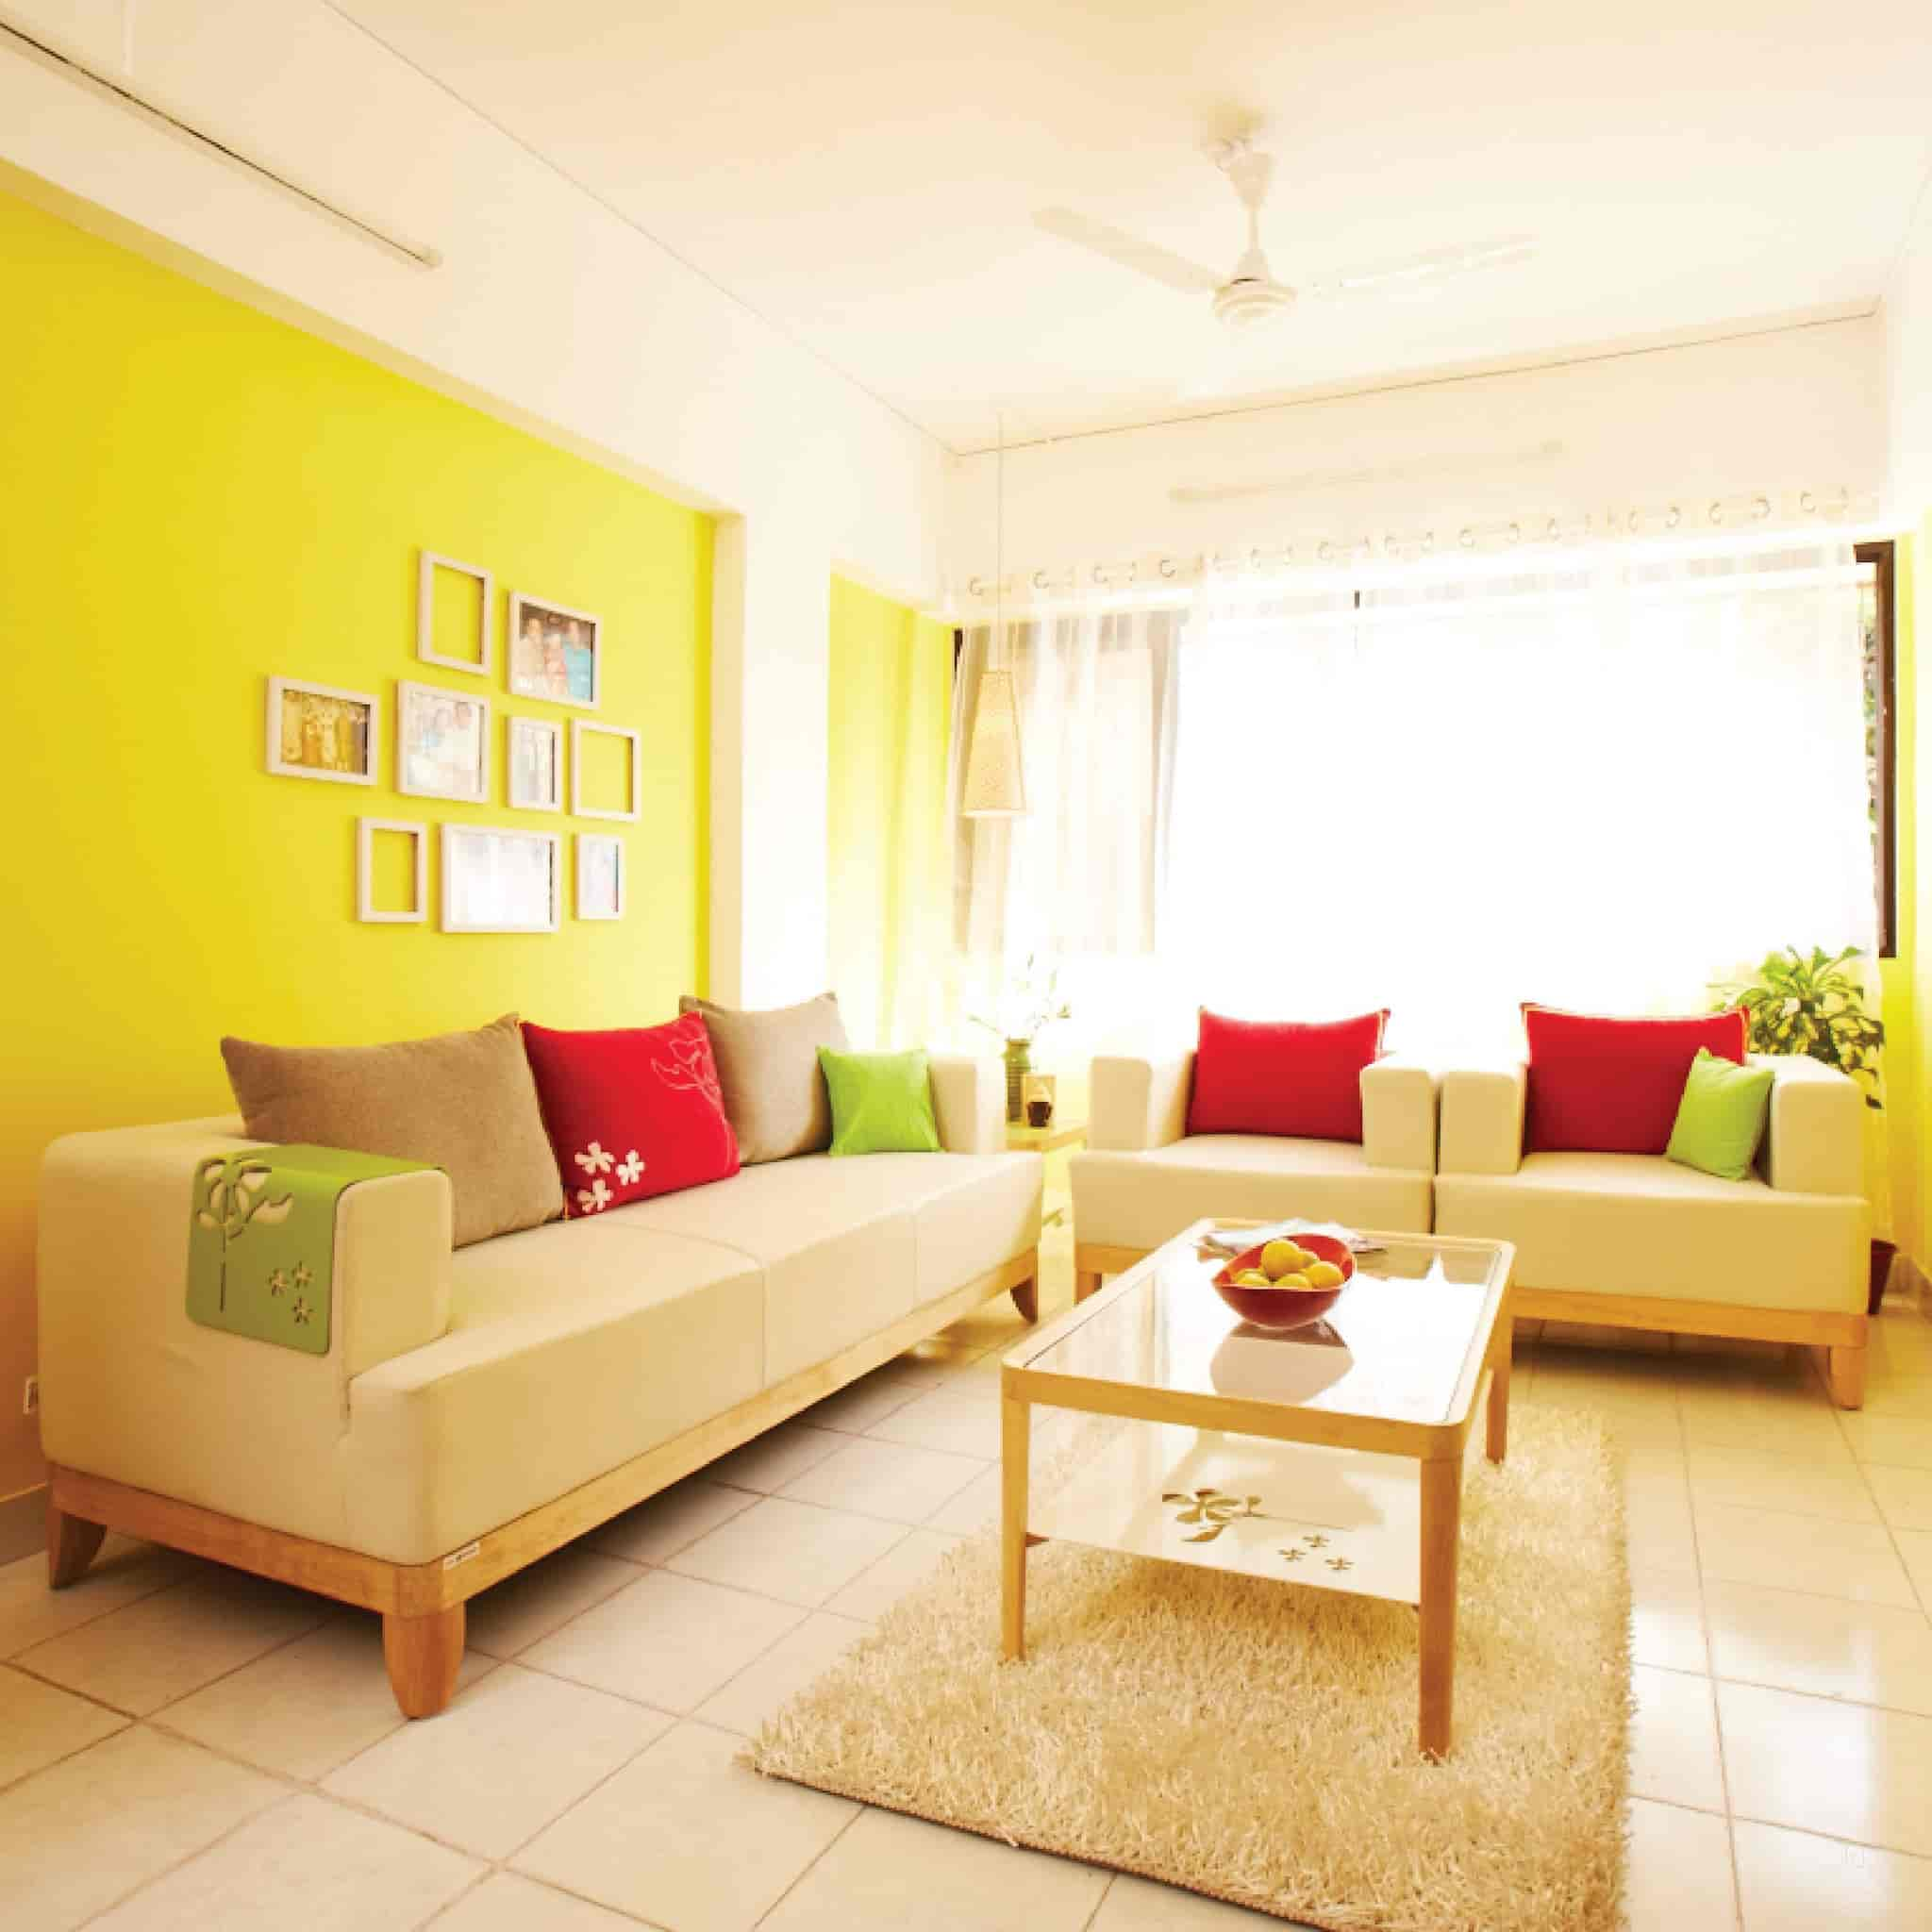 Godrej Interio, Kolhapur Ho - Furniture Dealers in Kolhapur - Justdial